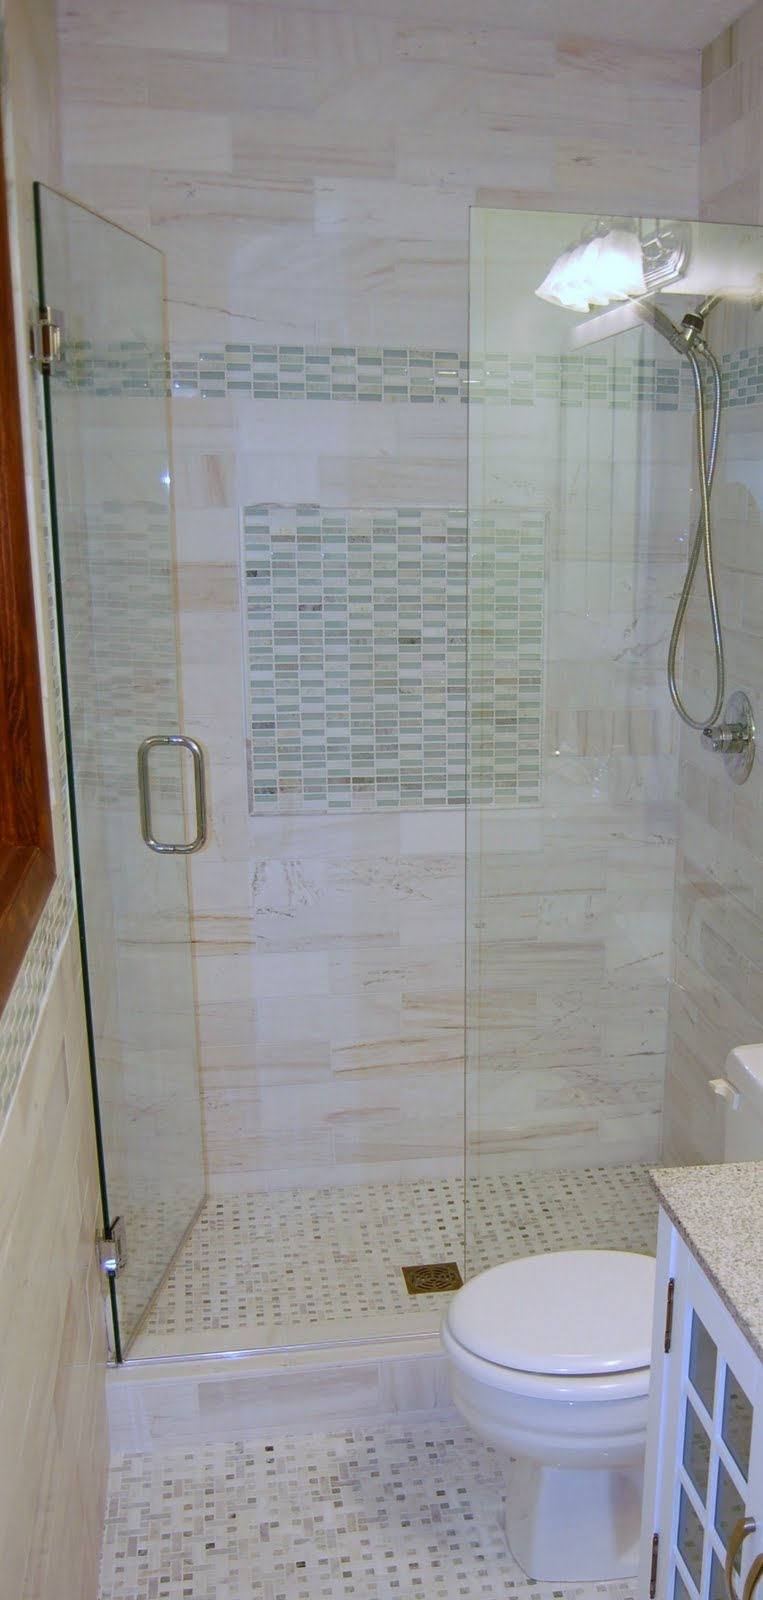 Customer Bathrooms | The Tile Shop: Design by Kirsty